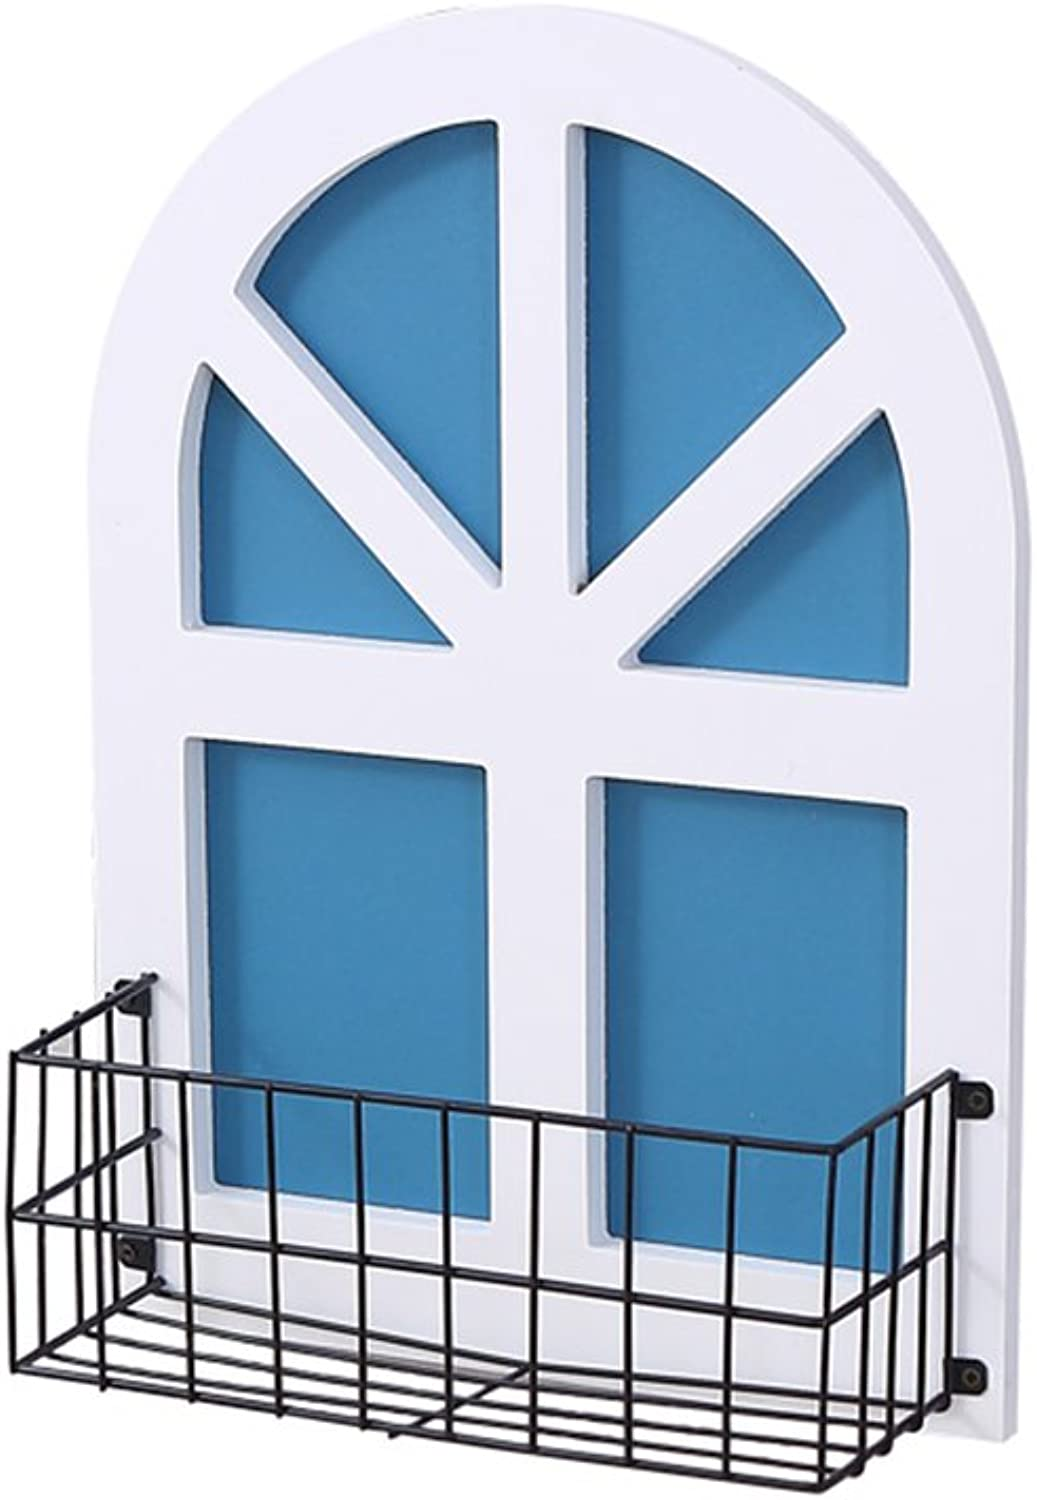 Wall Shelf Living Room Bedroom Decoration Background Wrought Iron Window Simple Wall Decoration Wall Hanging Punch-Free Decorative Flower Stand (color   White)